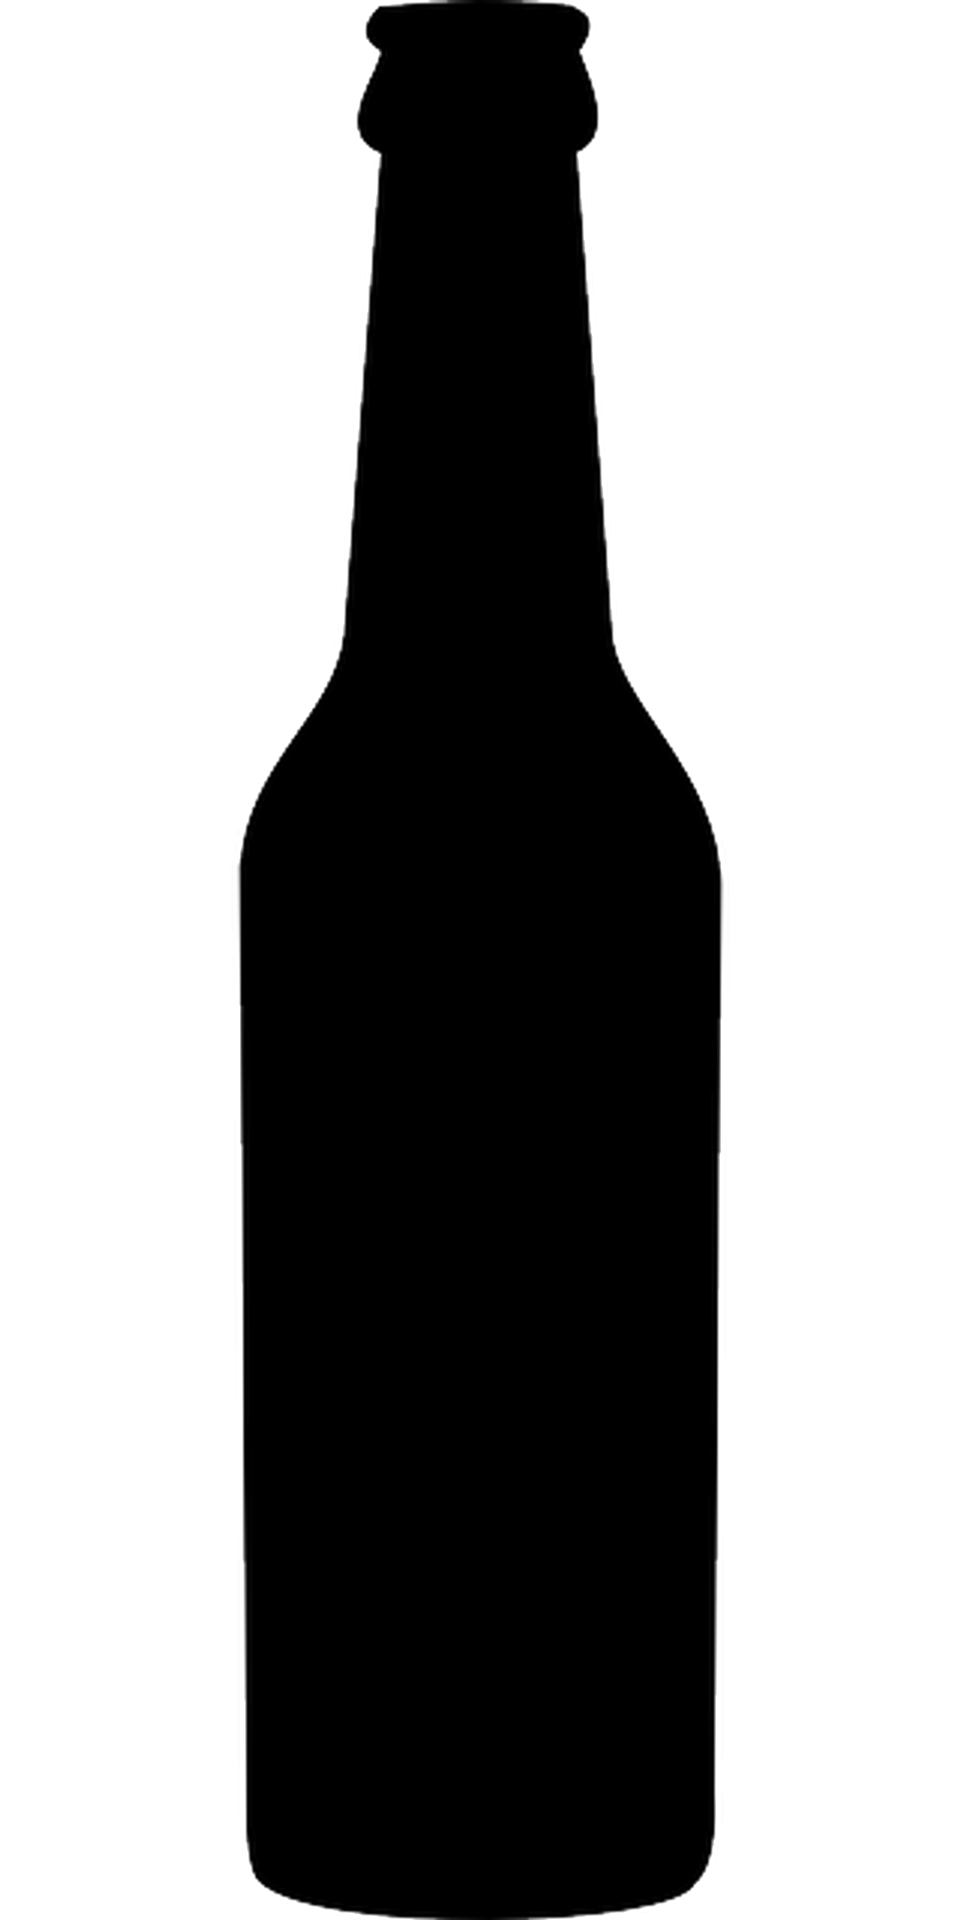 beer bottle silhouette free image on pixabay bottle beer silhouette black beer silhouette bottle